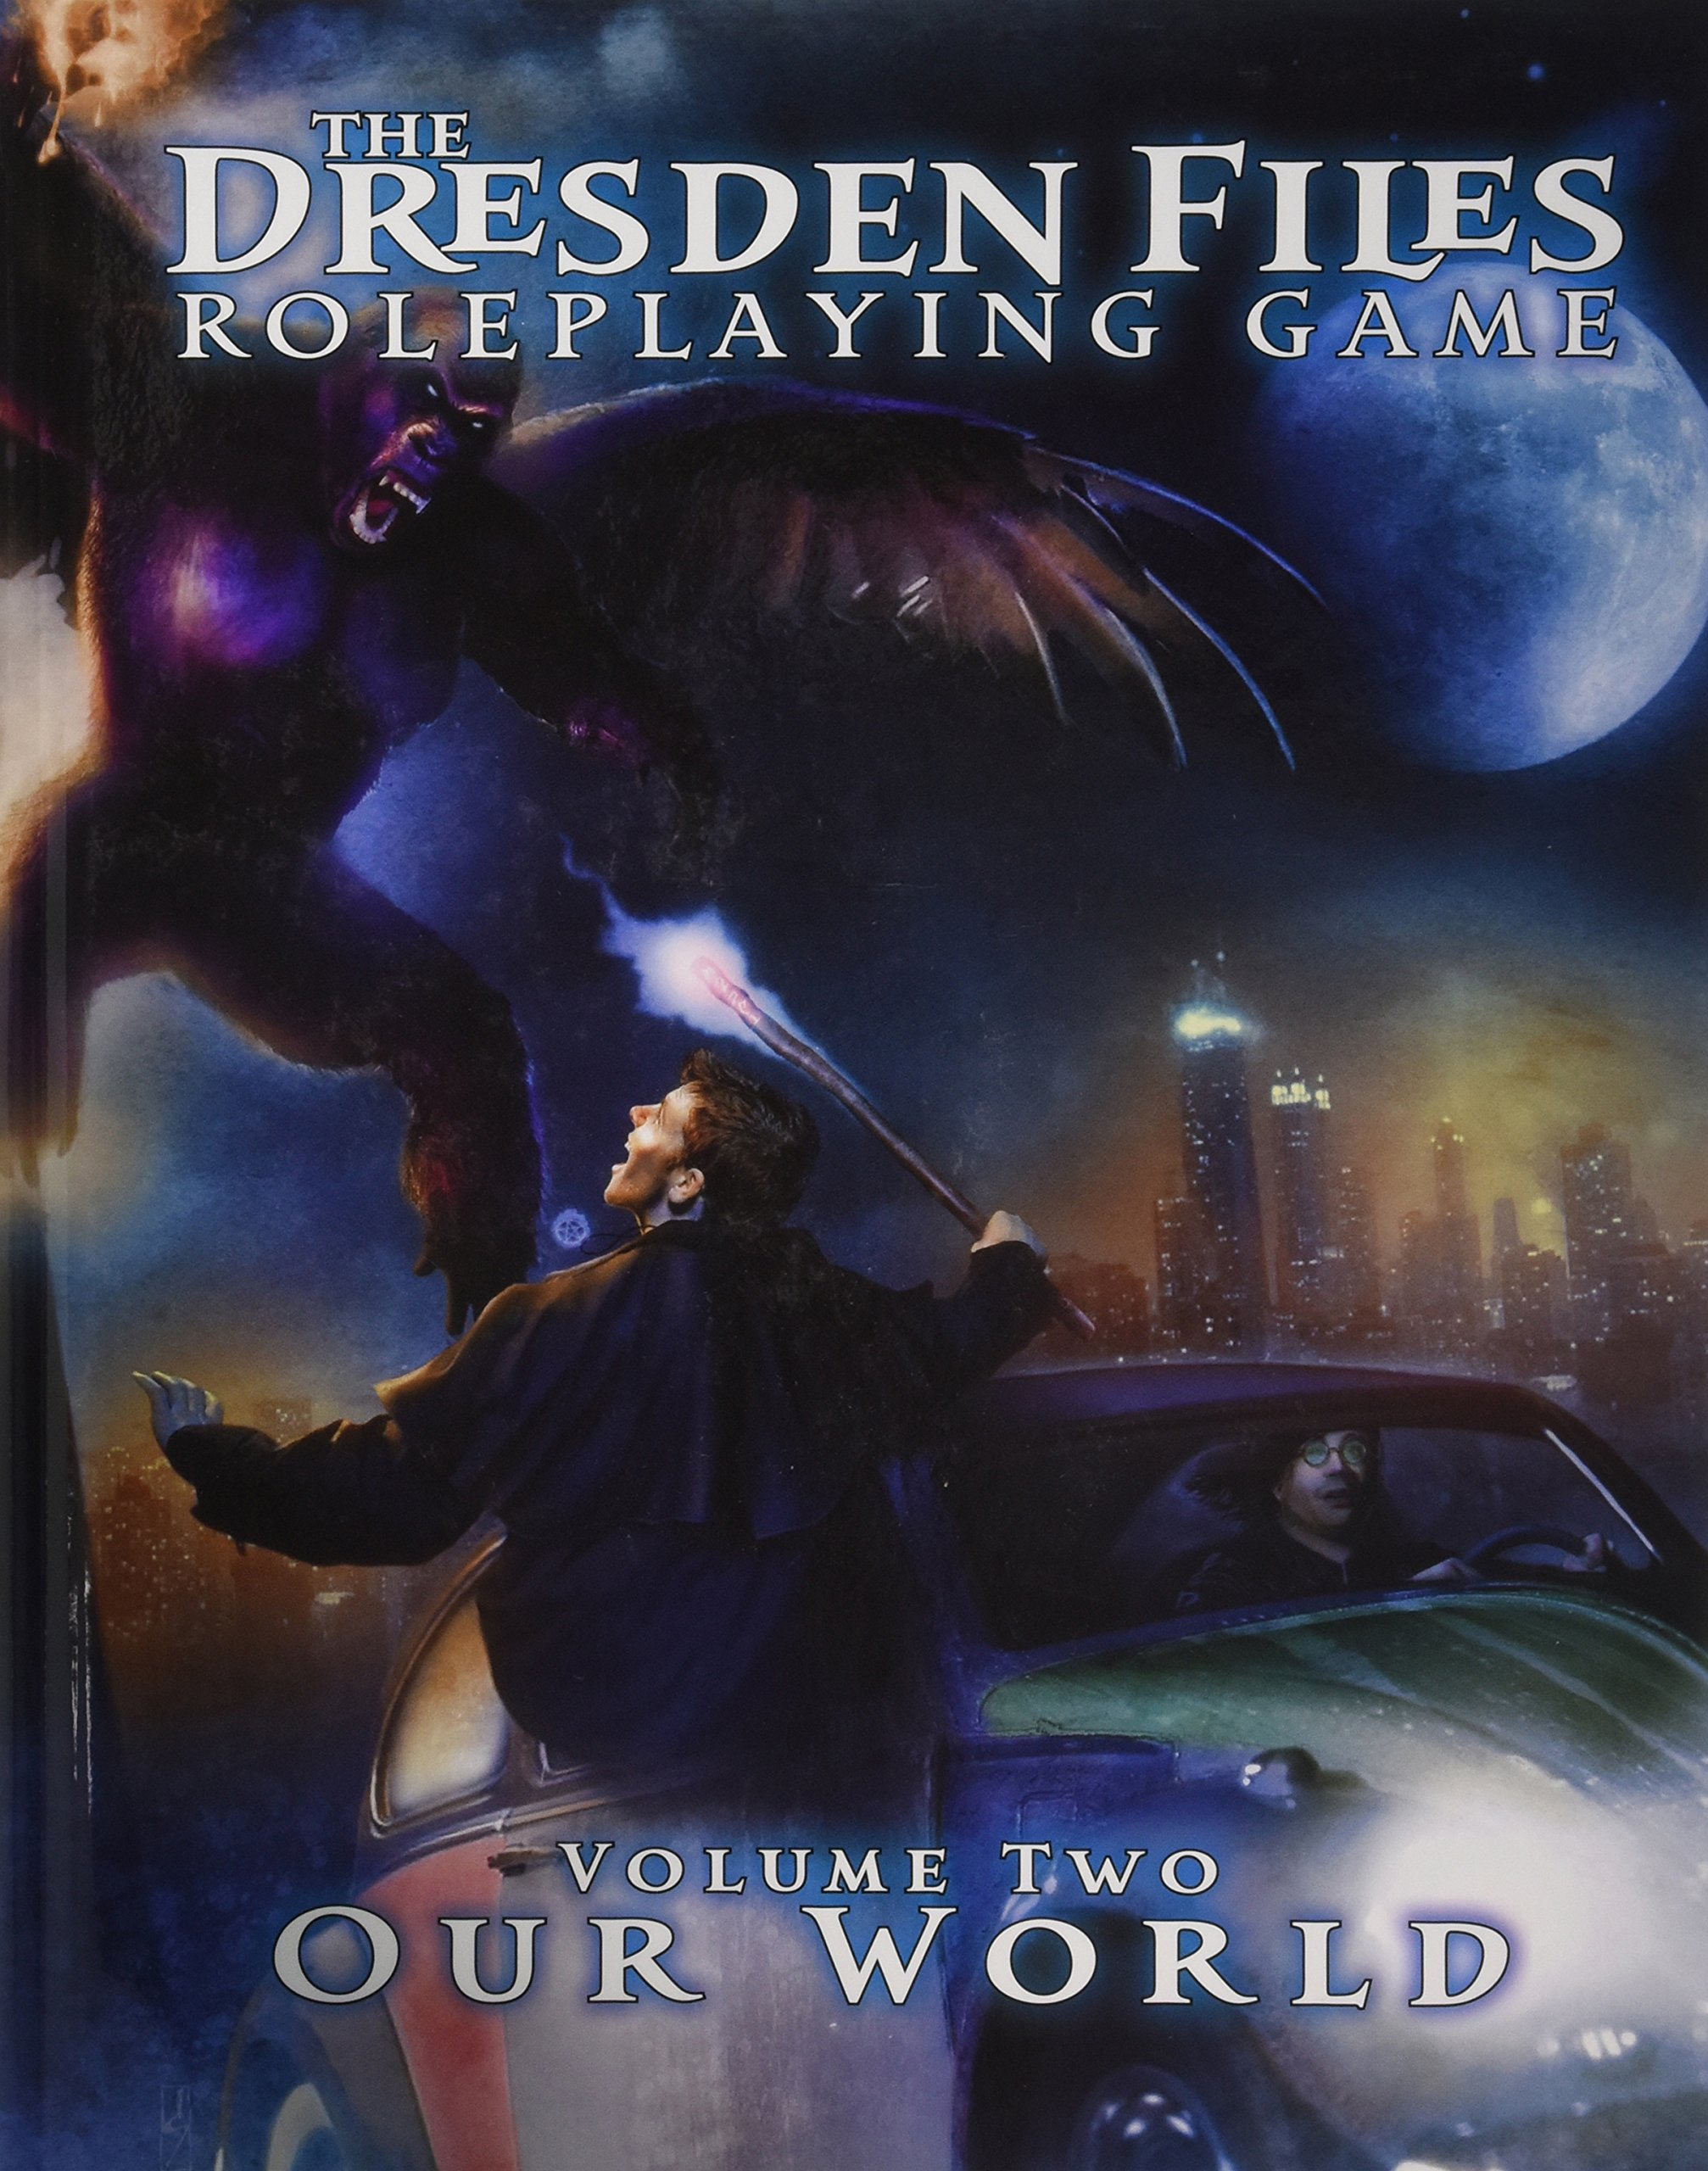 Dresden Files RPG  Core Rulebook Volume 2   Our World